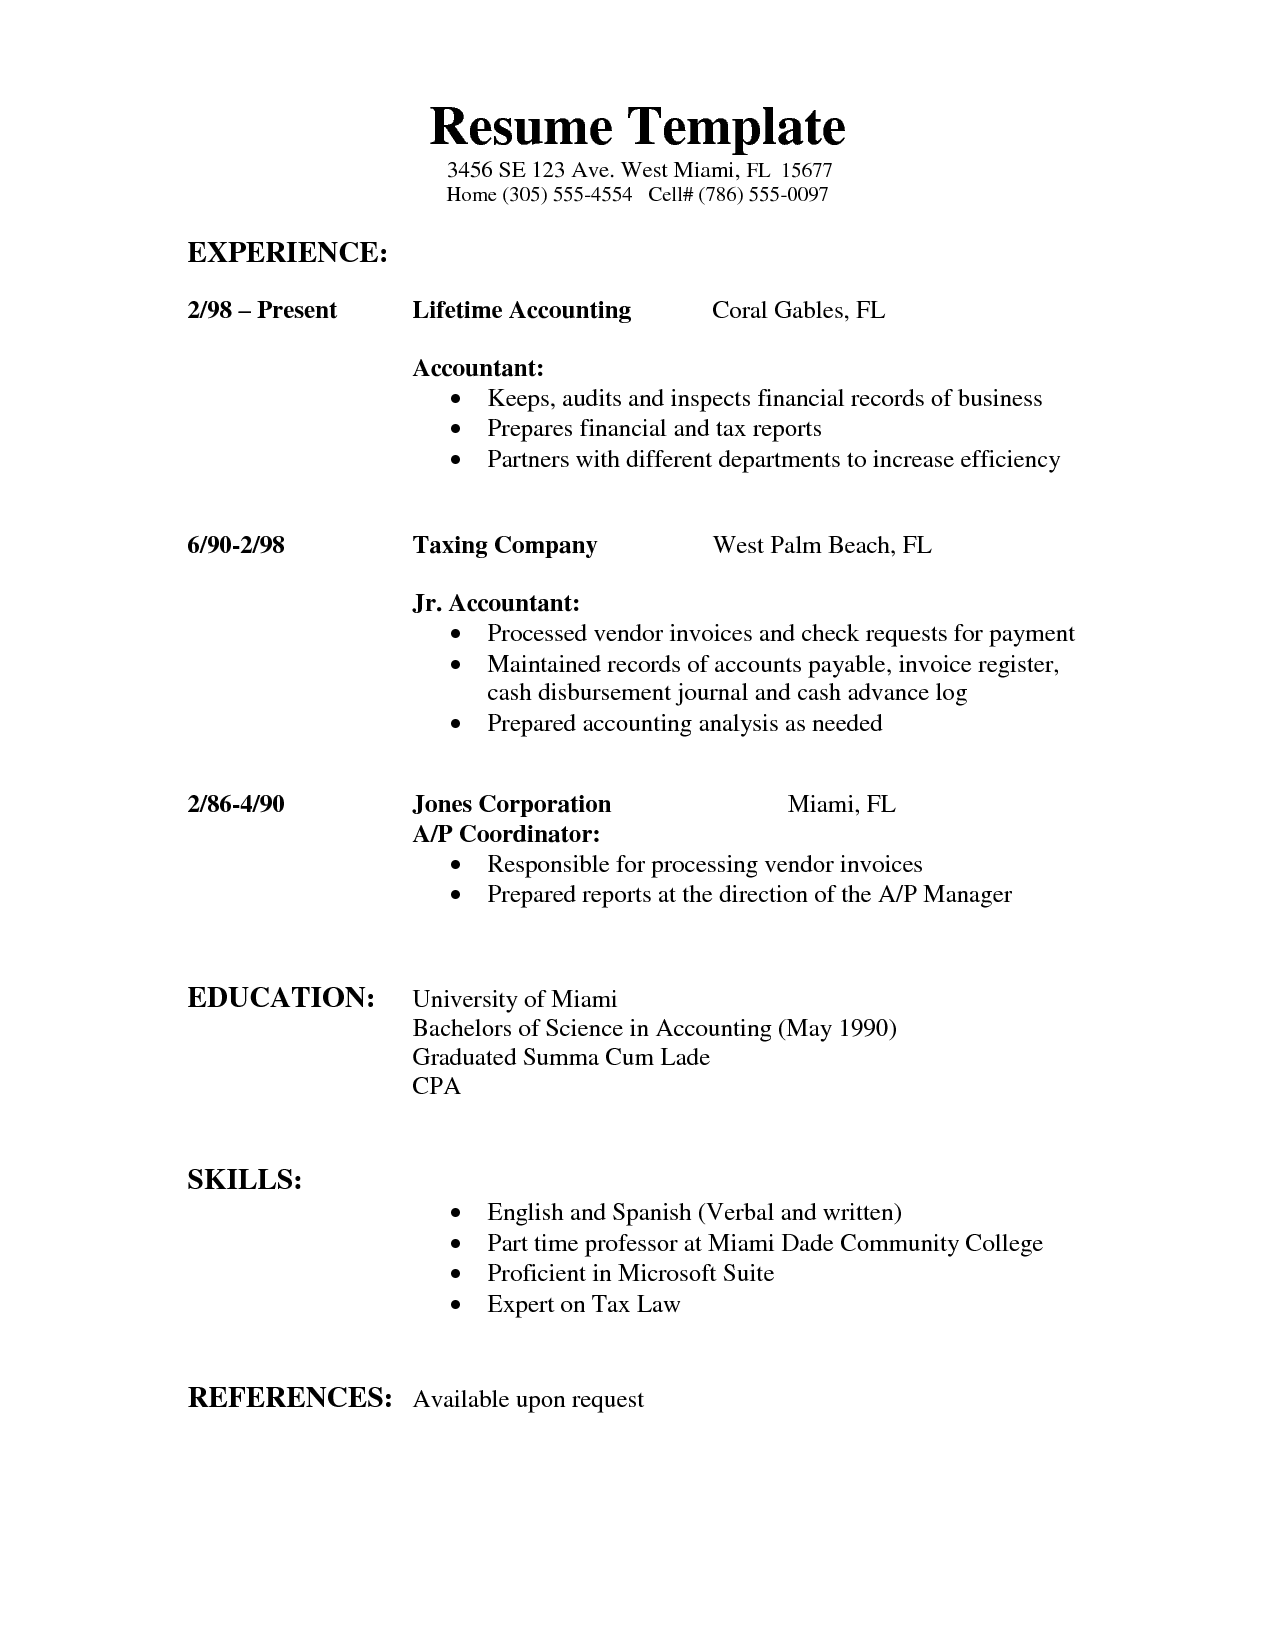 simple resume template - Simple Resume Templates Free